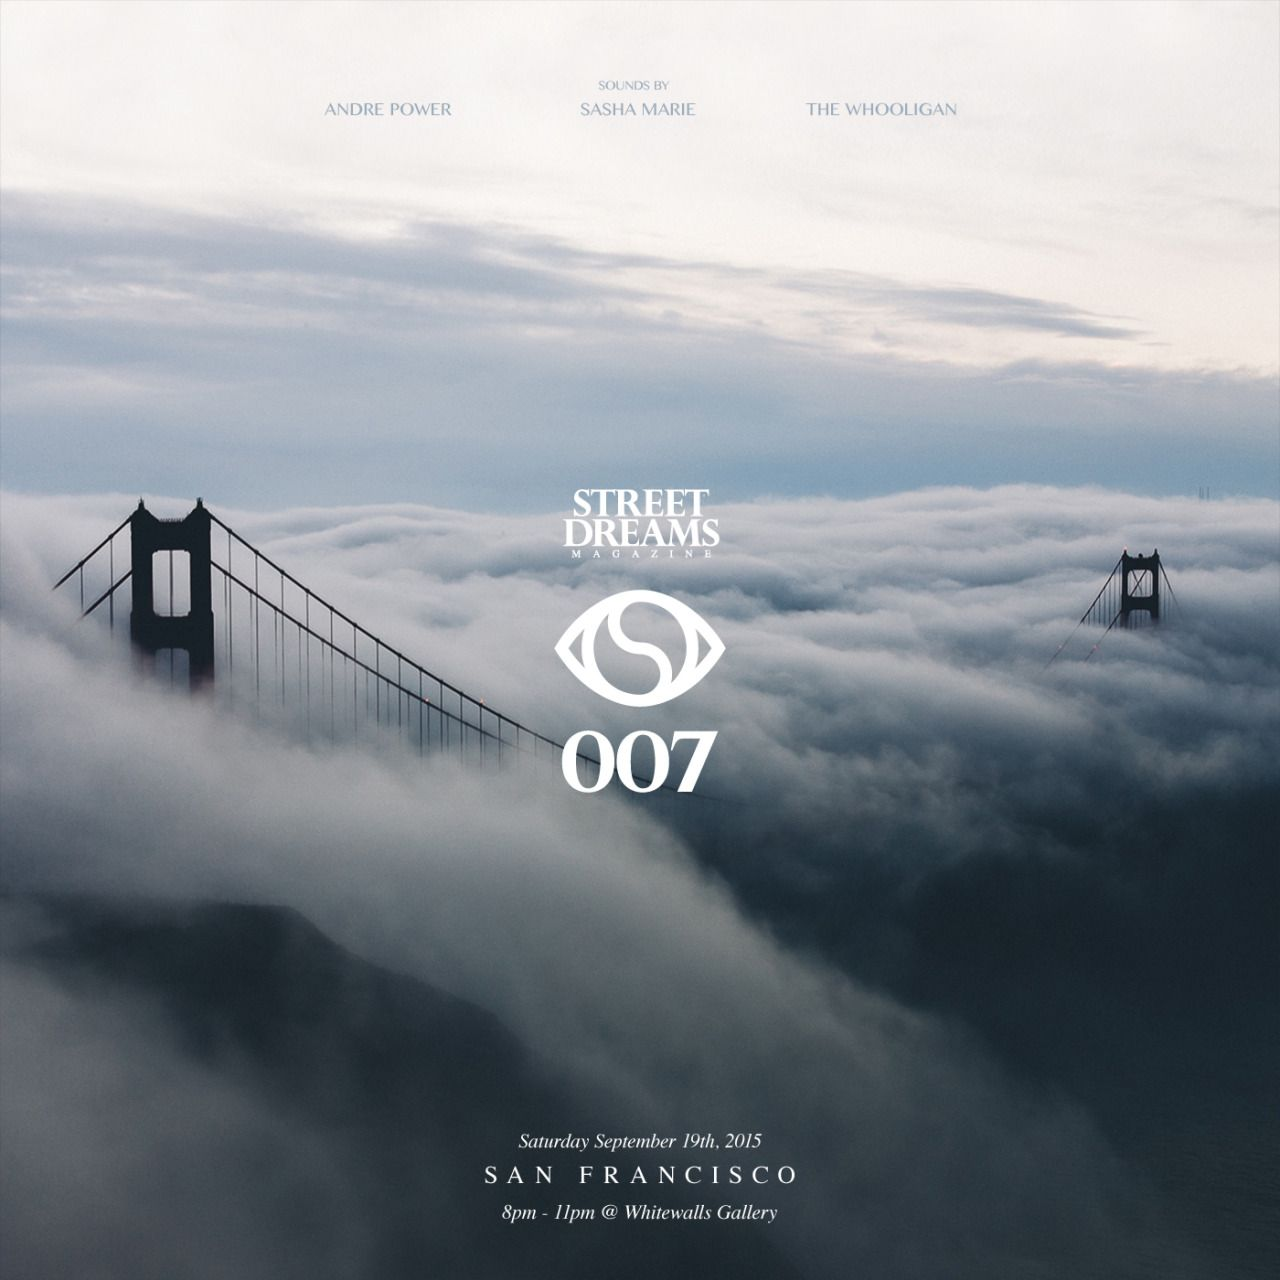 issue .007 launch gallery event with sounds provided by soulection with special DJ sets from Sasha Marie, Andre Power & The Whooligan.Join us on Saturday, September 19th from 8-11pm at the White Walls gallery in San FranciscoTickets available at:http://www.eventbrite.com/e/street-dreams-magazine-issue-007-launch-san-francisco-w-soulection-tickets-18487784461